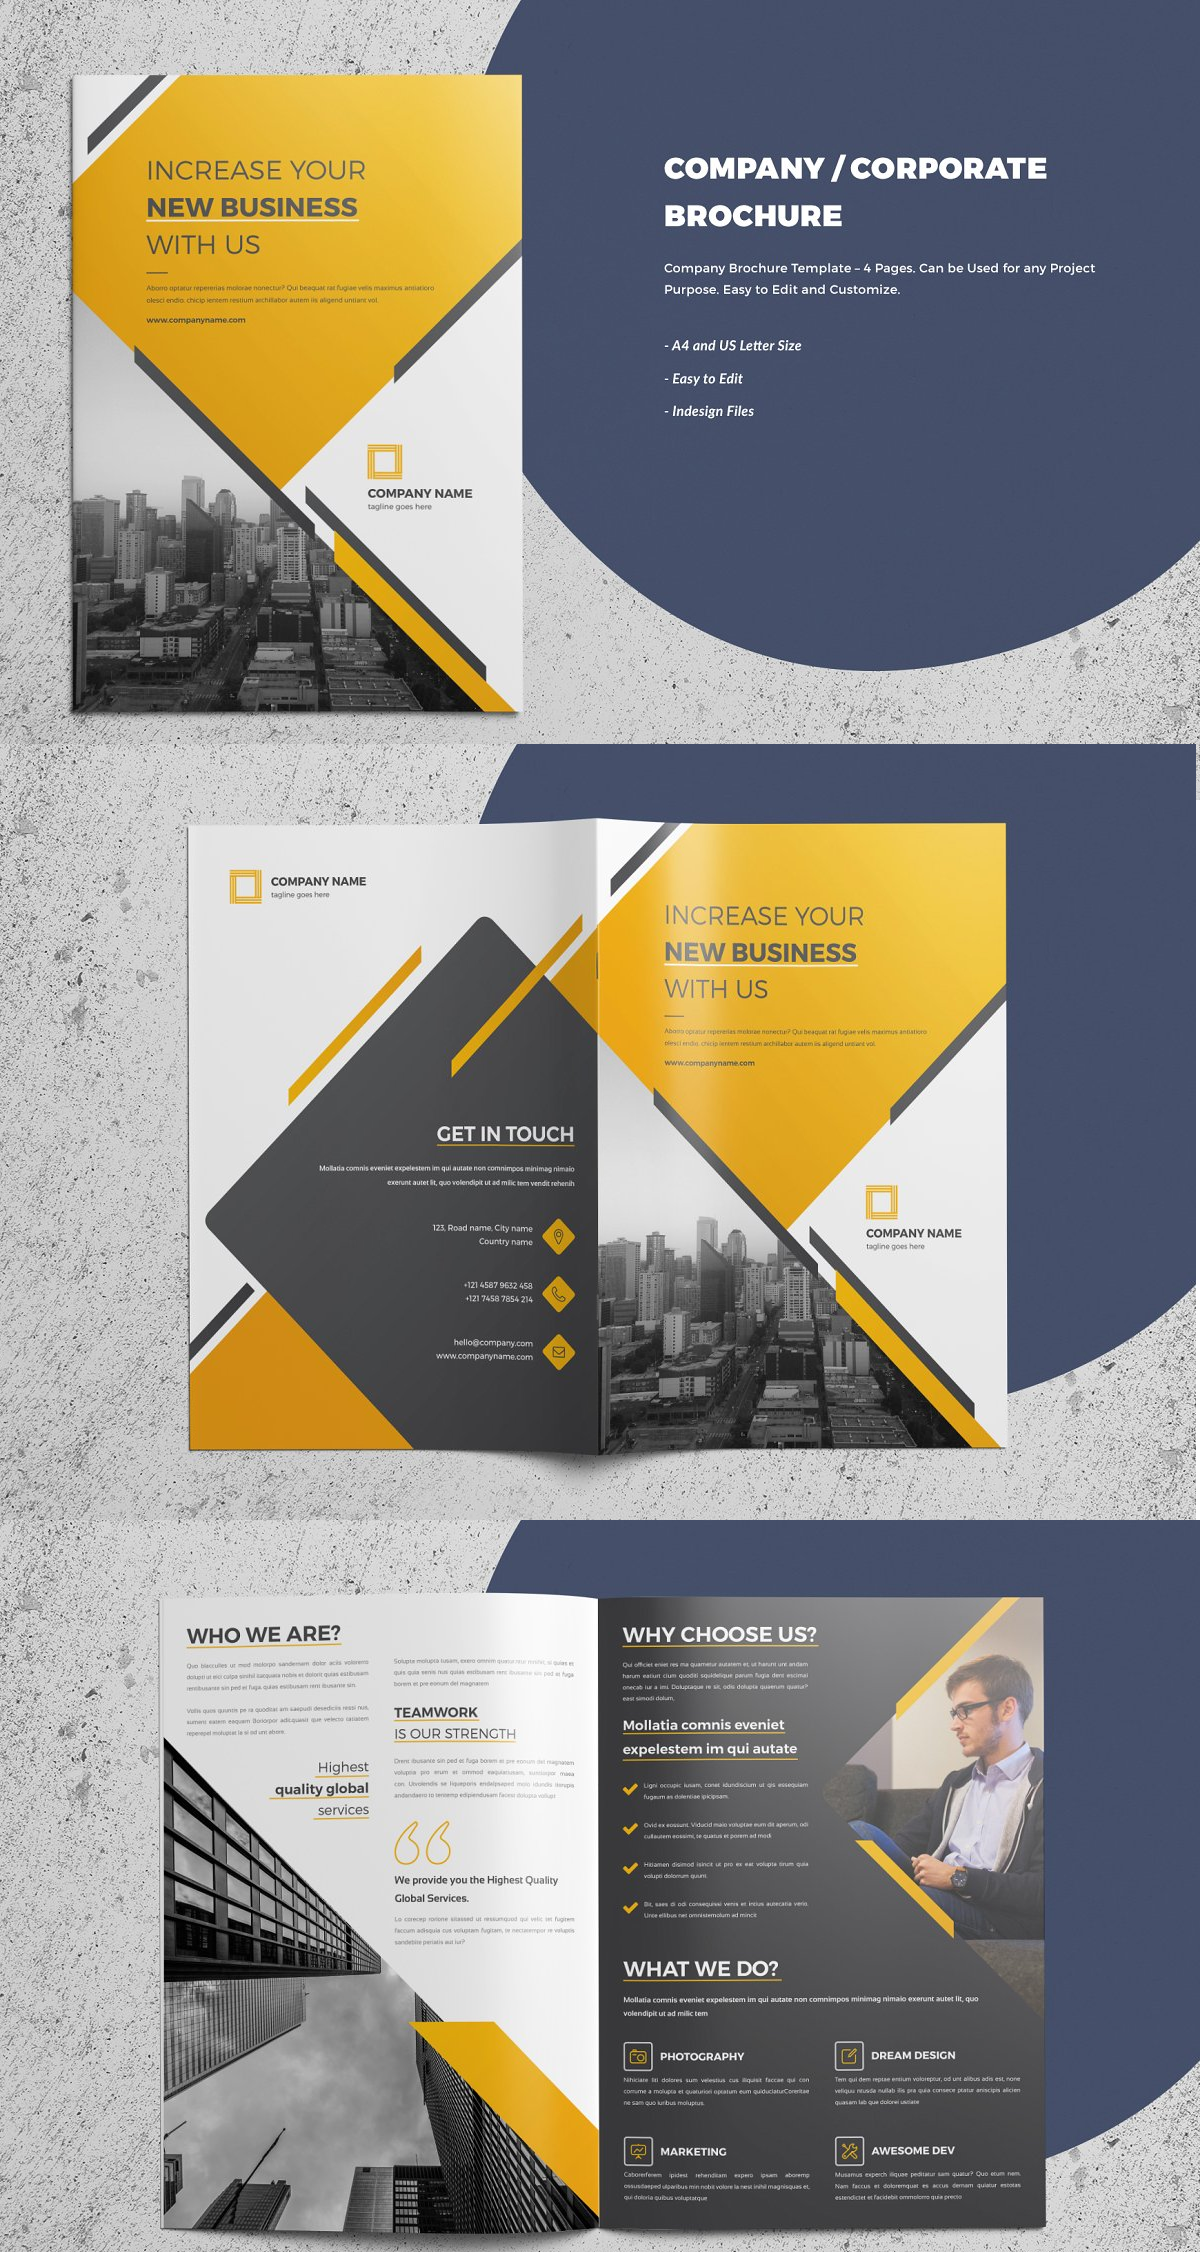 4 Pages Corporate Company Brochure Company Brochure Brochure Template Company Profile Design Templates